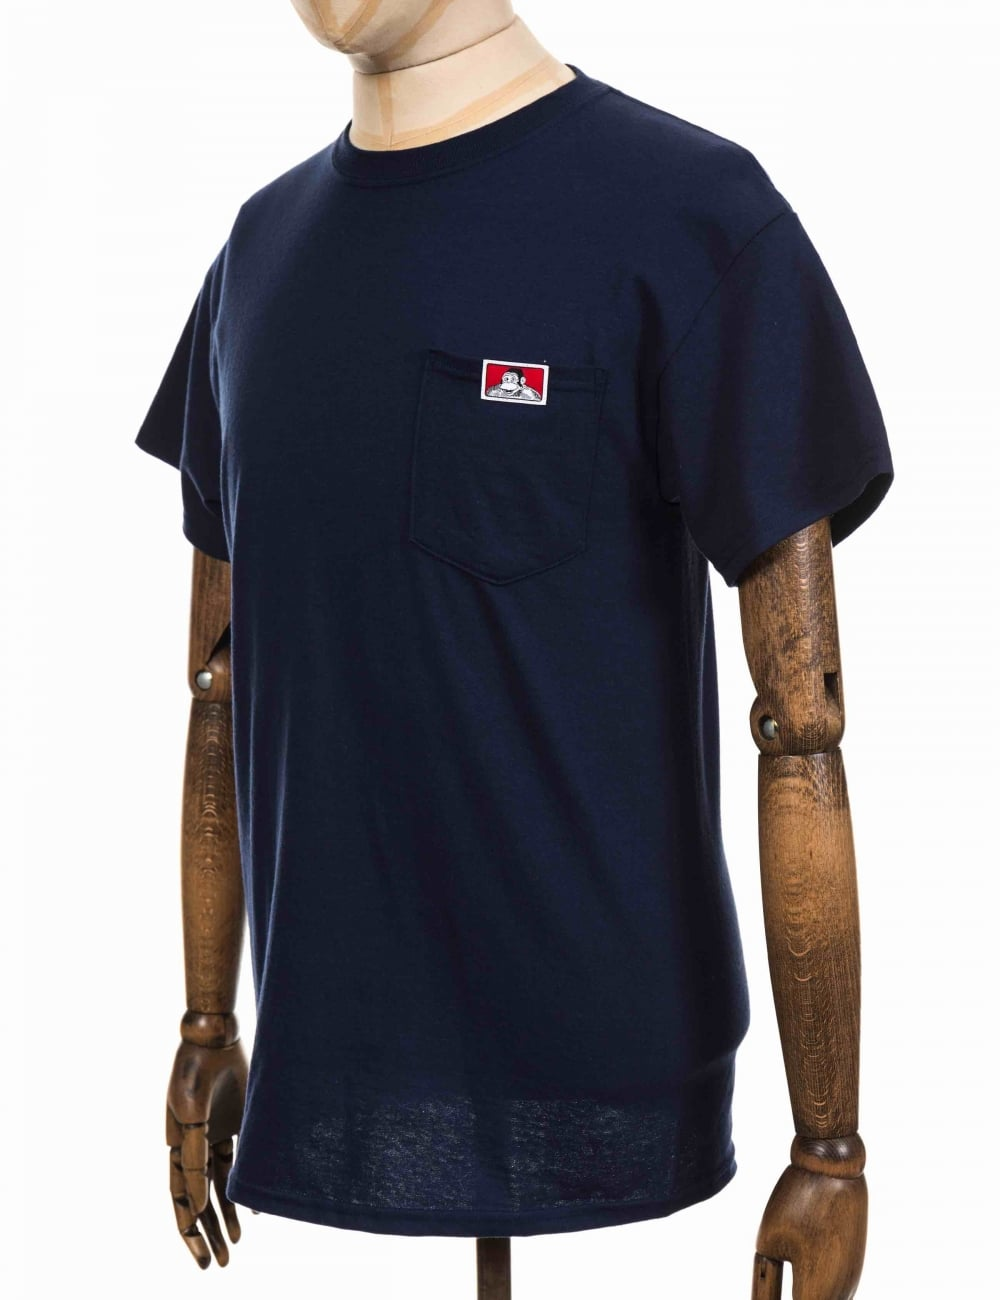 c0e1e61100 Ben Davis Classic Patch Logo Pocket Tee - Navy - Clothing from Fat ...